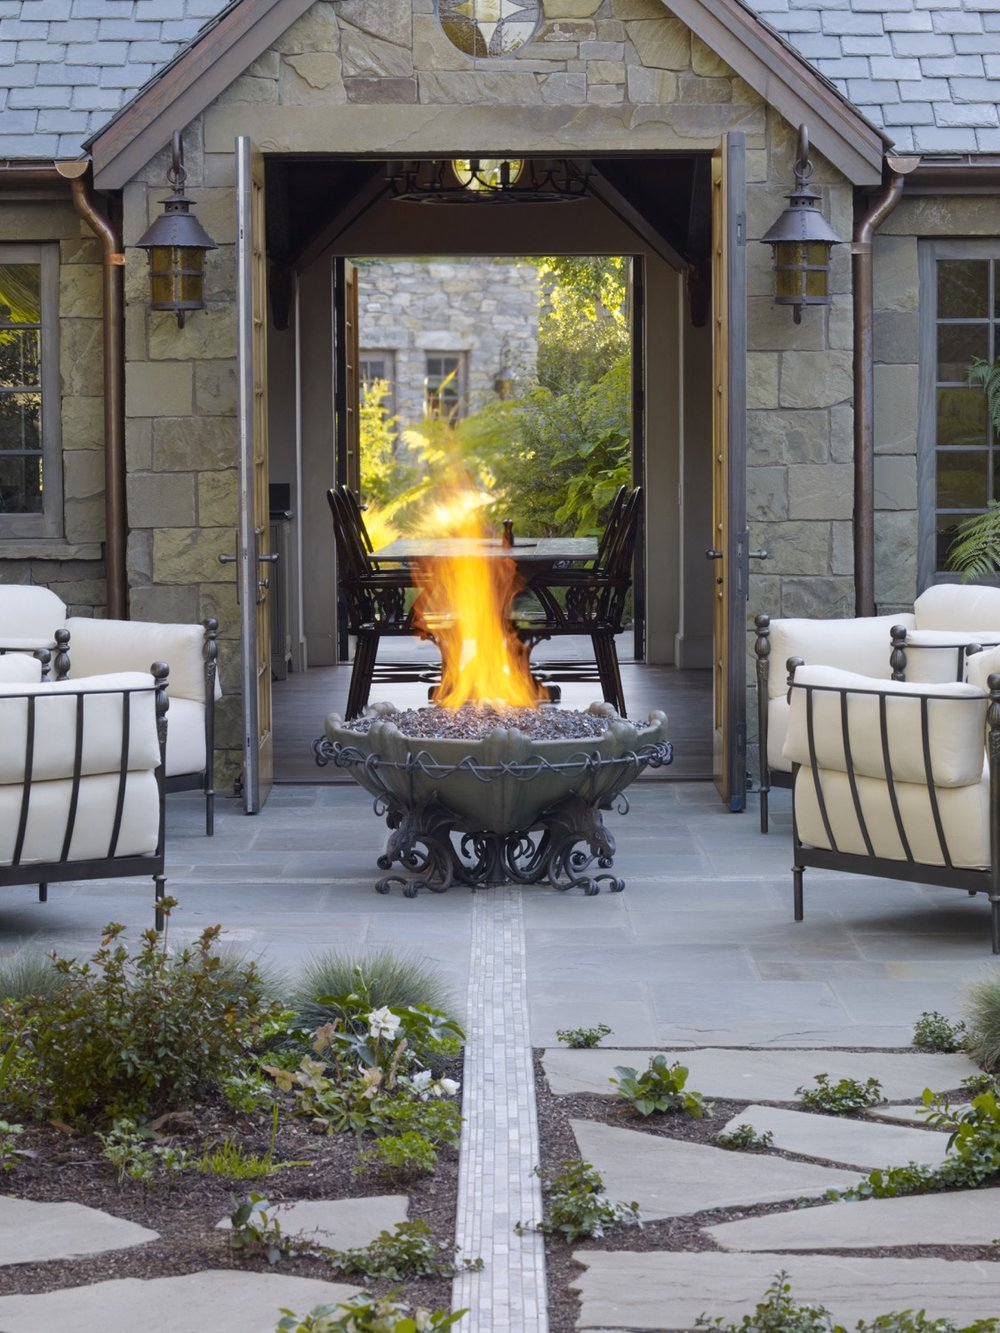 A fire pit anchors a courtyard outside of the dining room. On the other side of the open doors of the dining room, a water fountain anchors the entry courtyard.